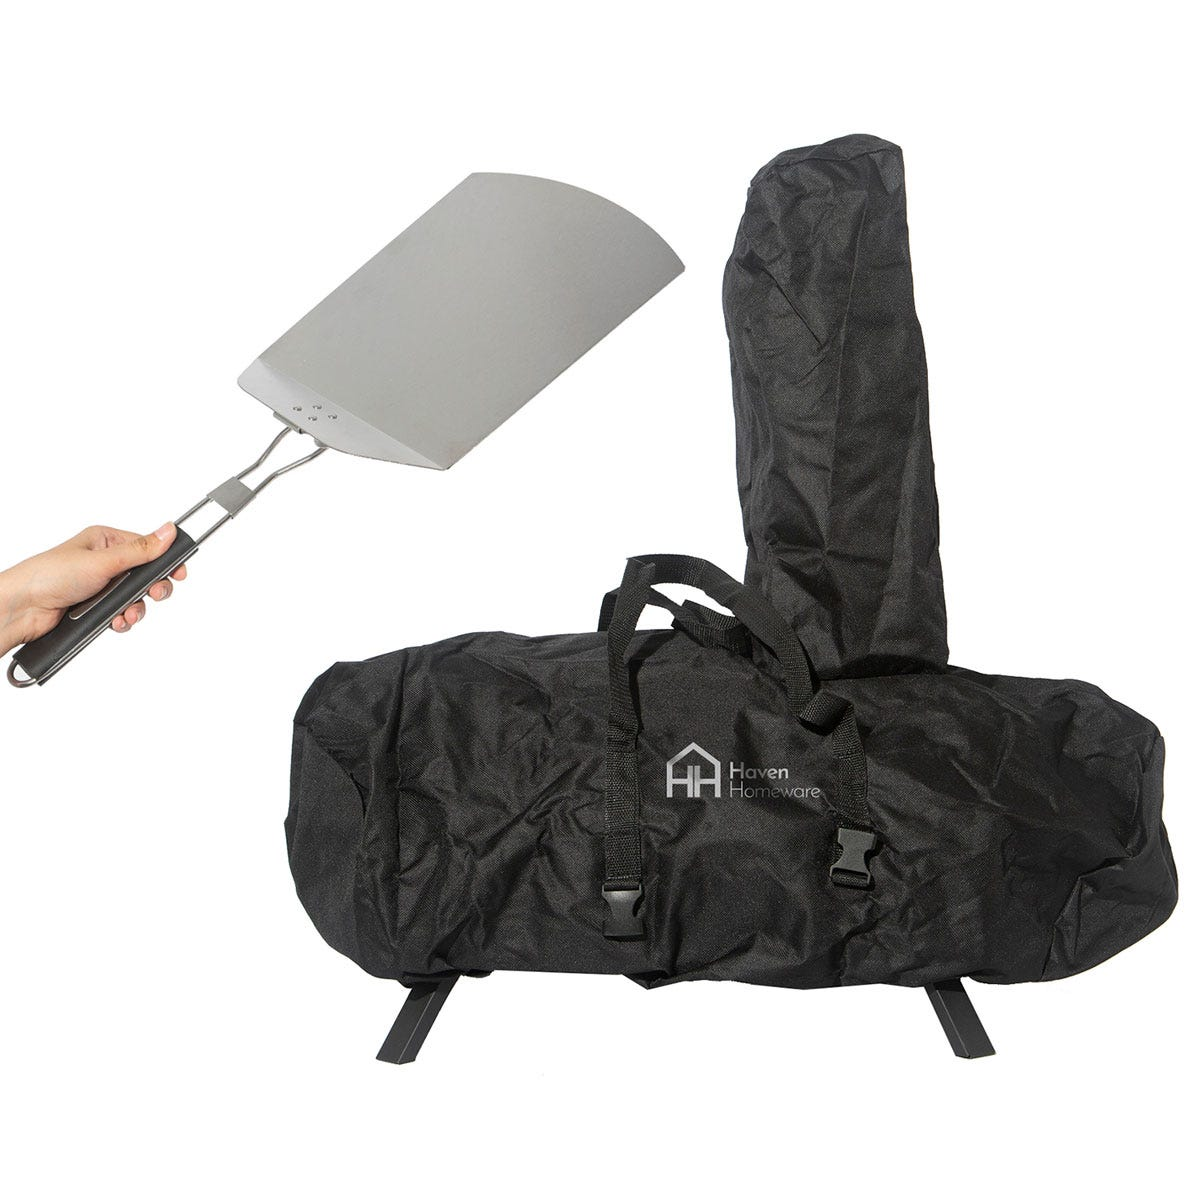 Haven Pizza Oven with Pizza Paddle and Raincover